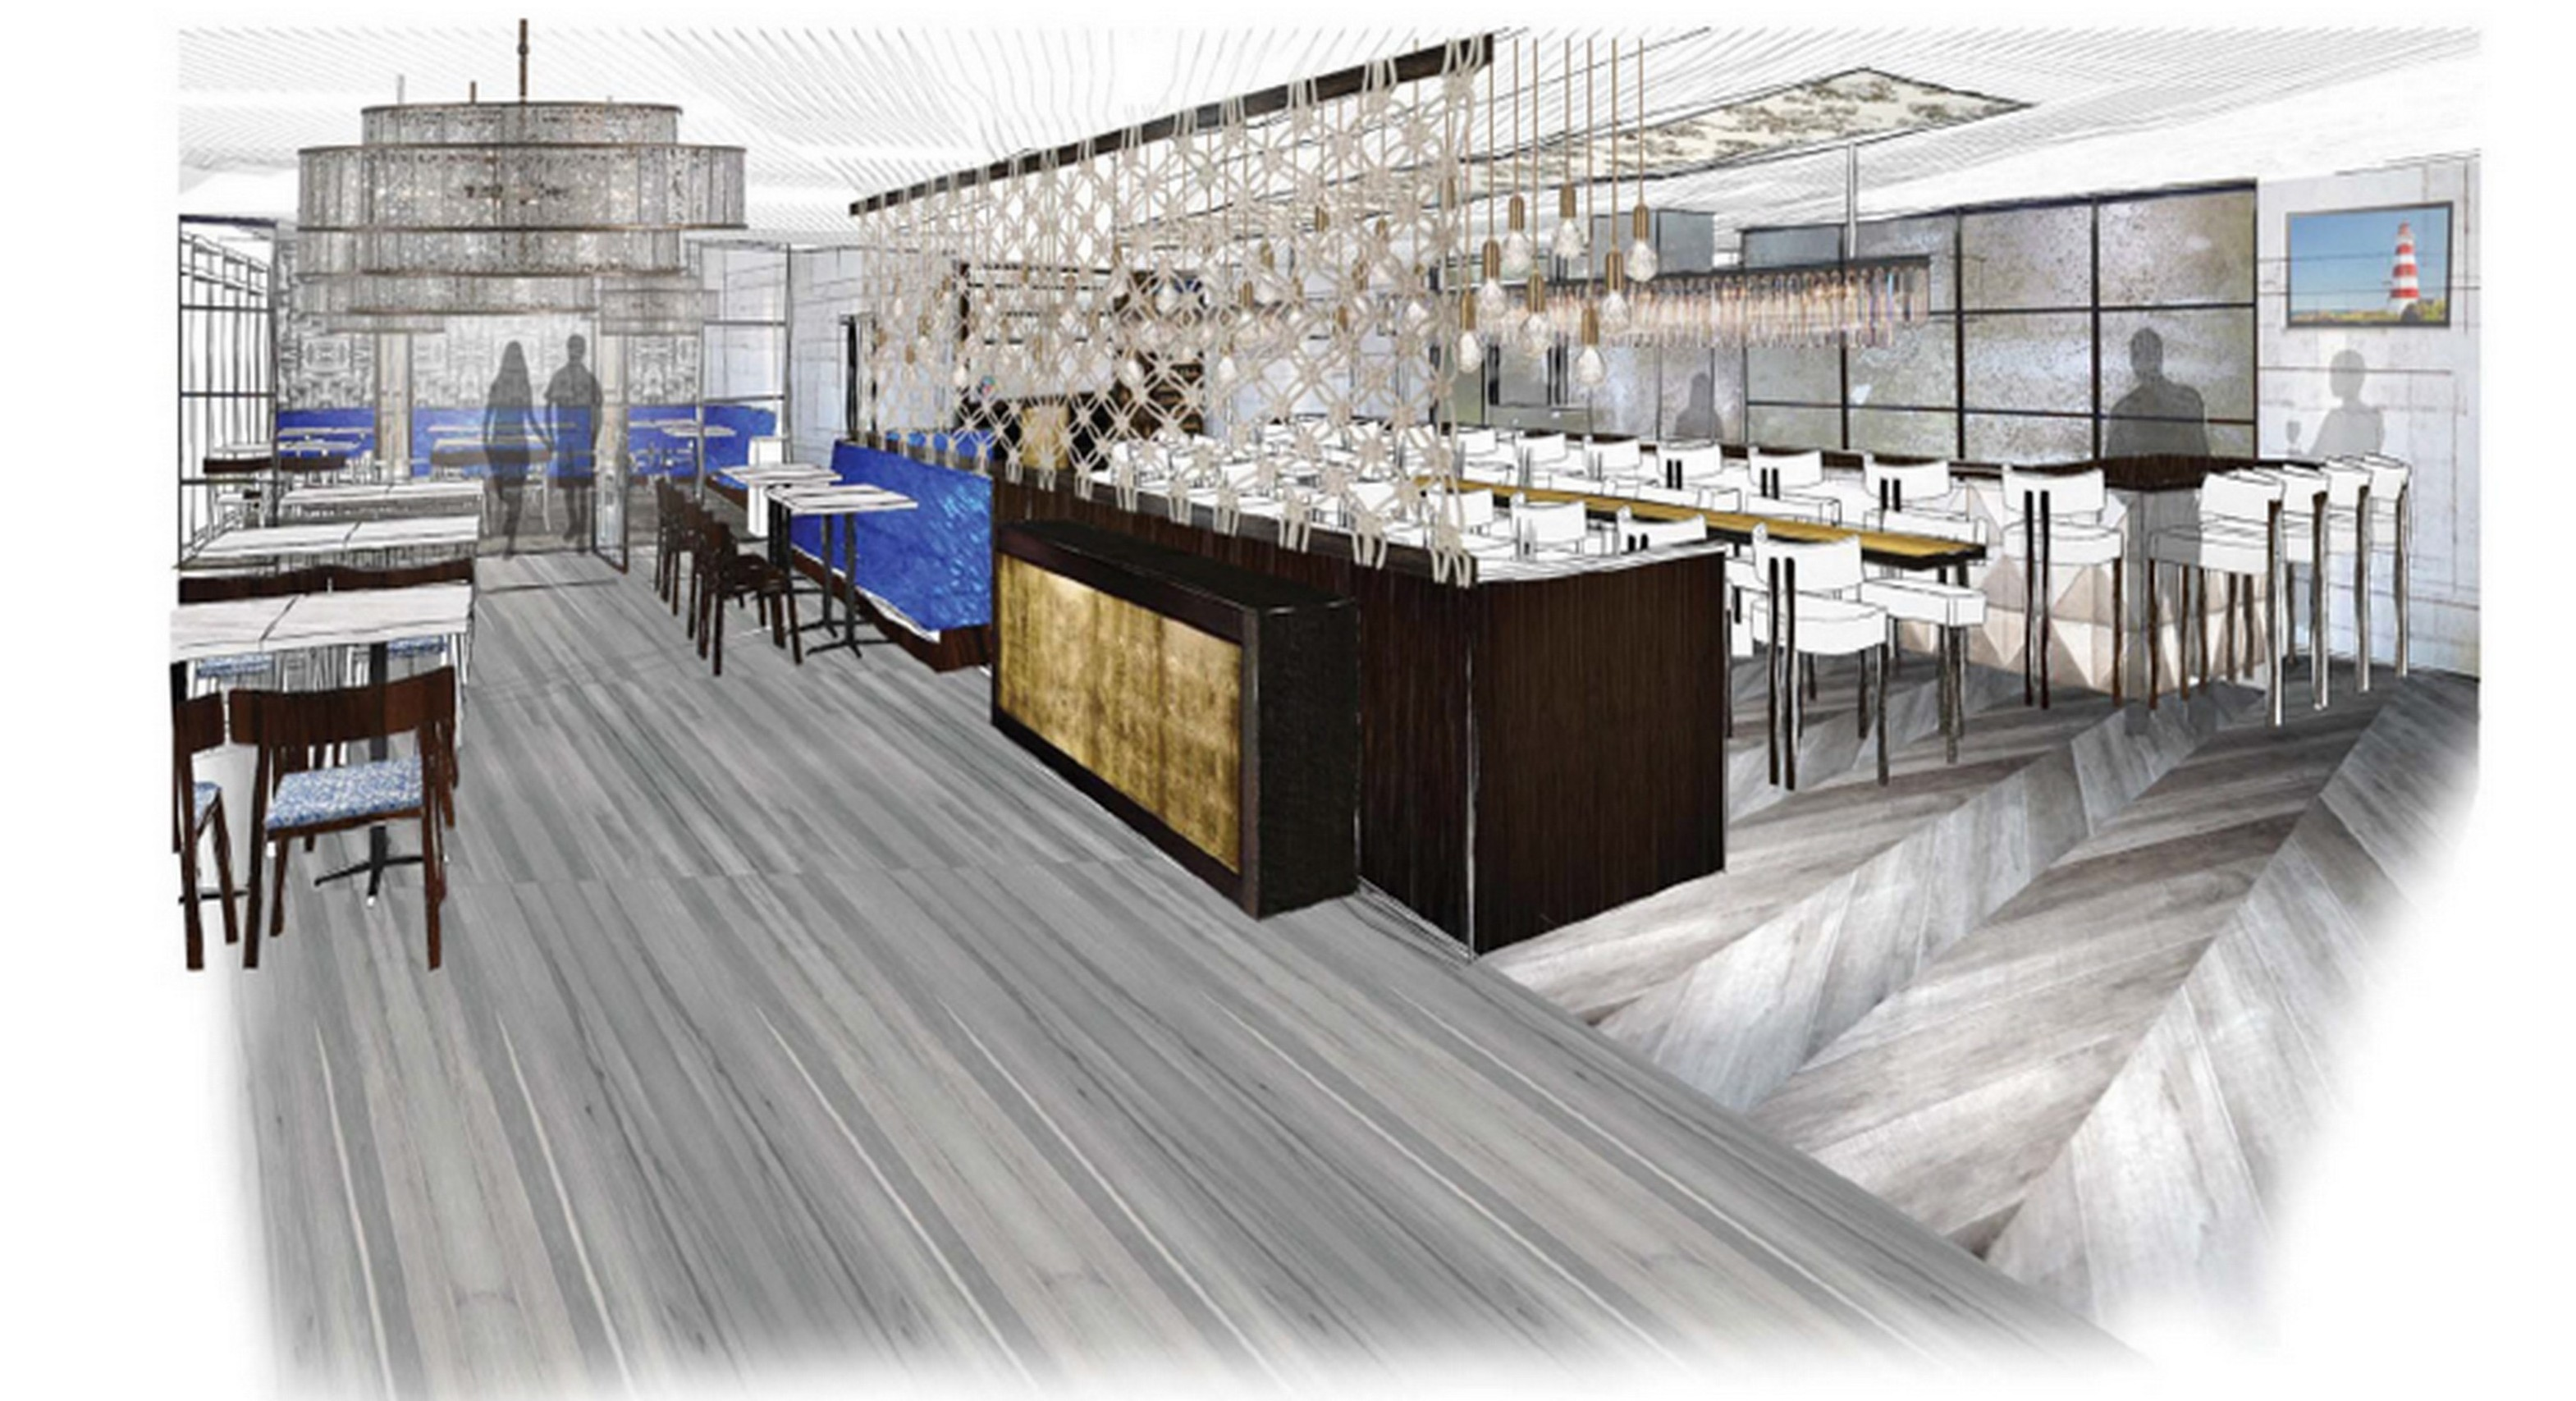 A New American Cuisine Inspired Restaurant To Open In Silver